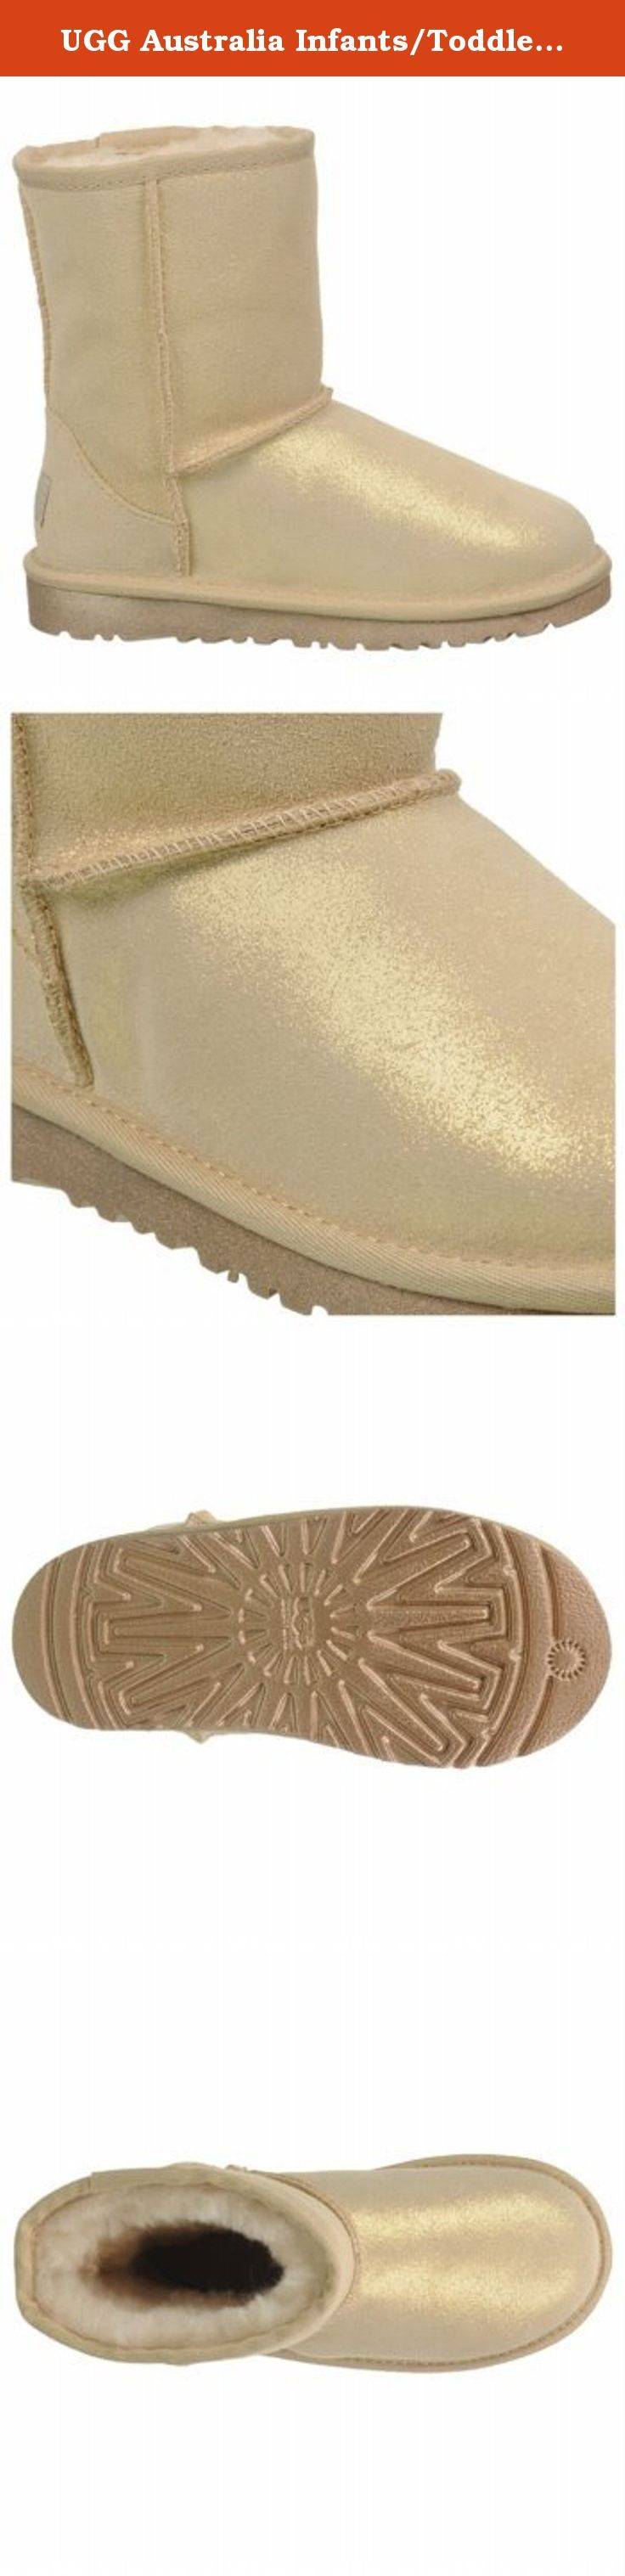 "UGG Australia Infants/Toddlers Classic Glitter Toddler,Gold,US 7 M. For children's sizes 13 to 4 please enter ""Classic Glitter Little Kids"" in the search box above. For children's sizes 5 and 6 please enter ""Classic Glitter Big Kids"" in the search box above. The Classic Glitter pleases with the warmth and comfort of the UGG® Classic Collection. Soft Twinface sheepskin sparkles with an allover glitter application, while its moisture-wicking interior and added foam deliver all-day comfort."